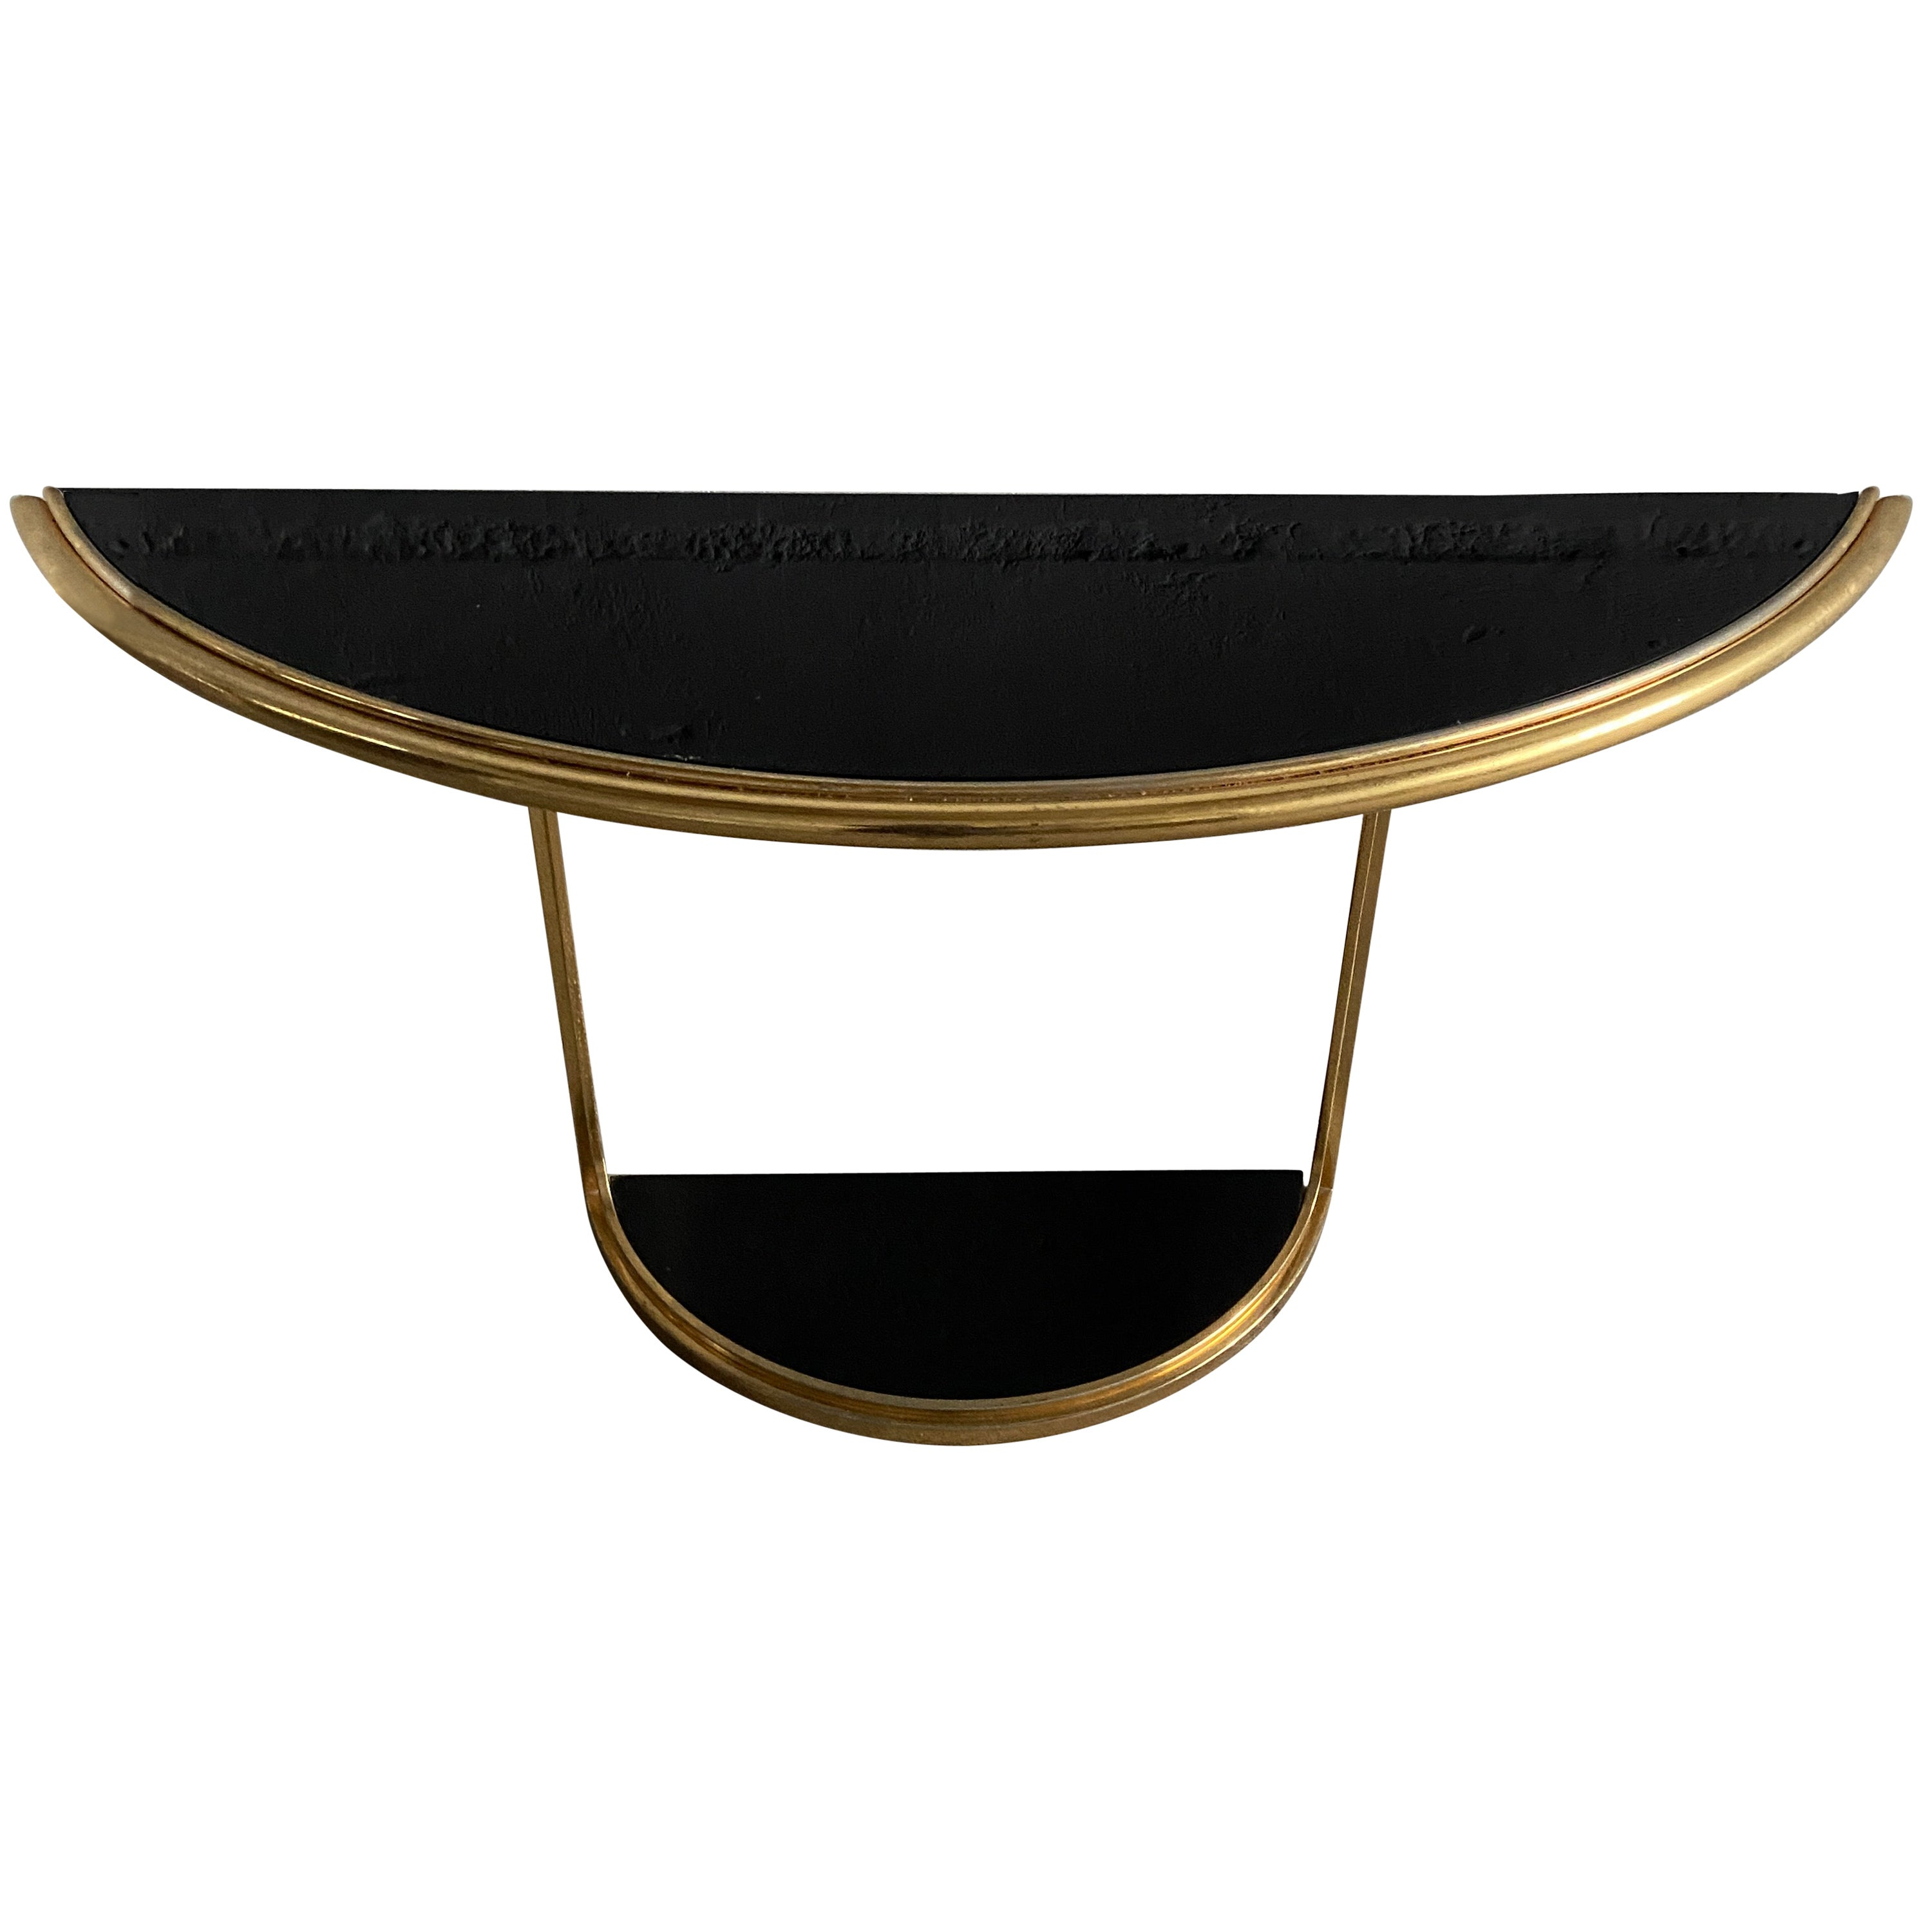 Mid-Century Modern Italian Gilt Metal Console Table with Black Glass, 1970s